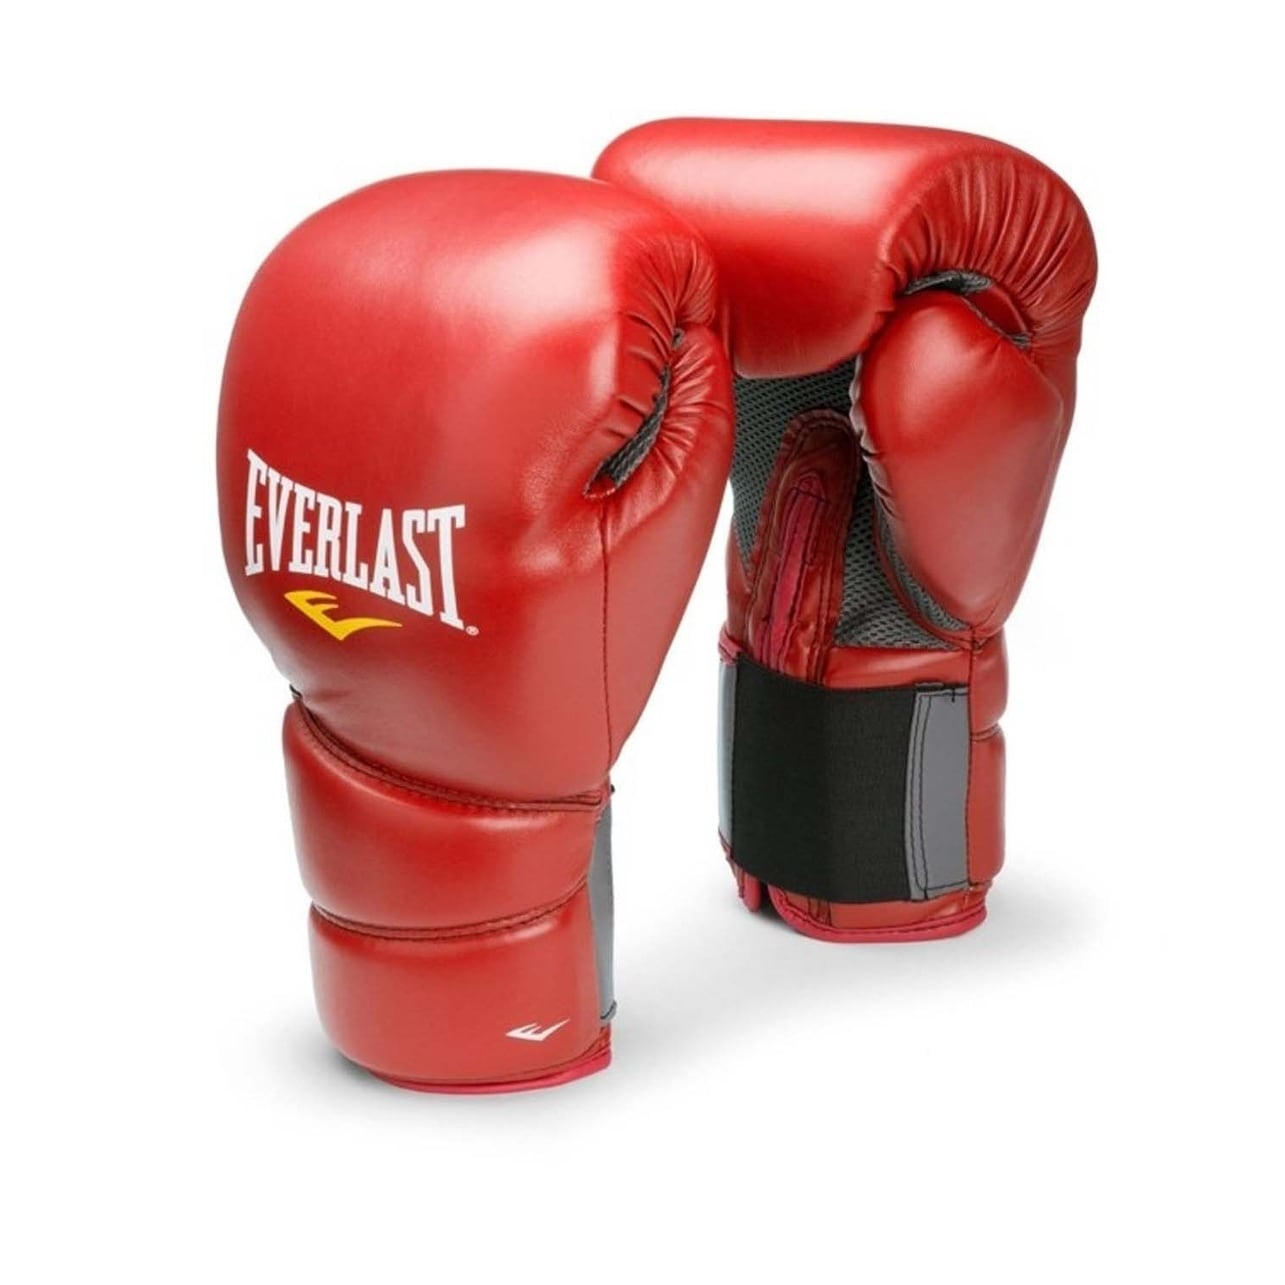 Everlast Protex2 Training Gloves, Red